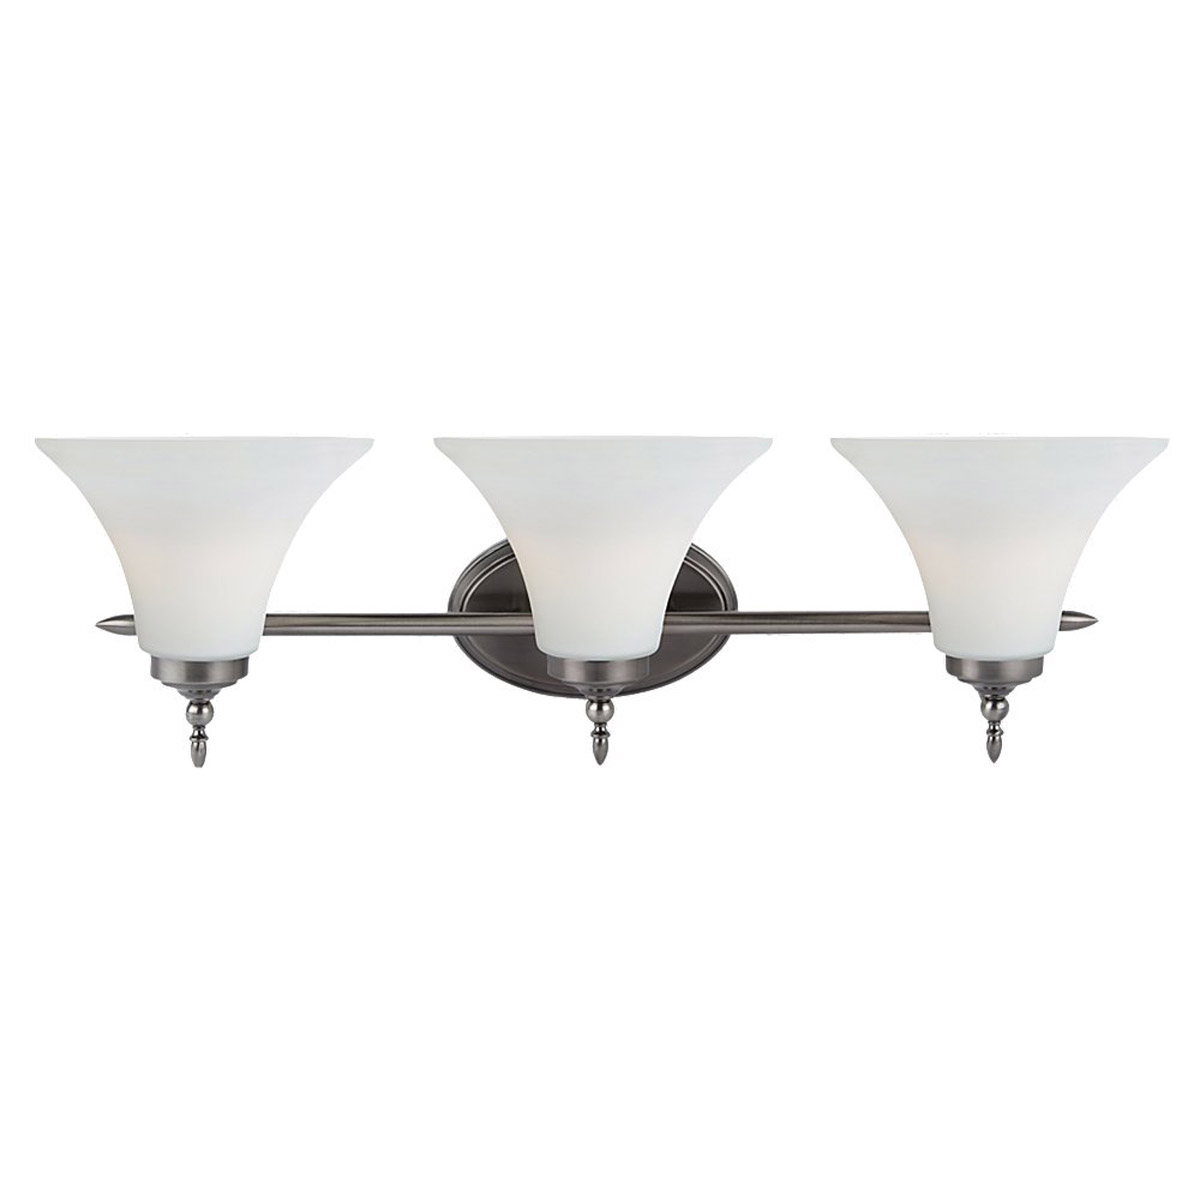 Sea Gull Lighting Montreal 3 Light Bath Vanity in Antique Brushed Nickel 41182BLE-965 photo